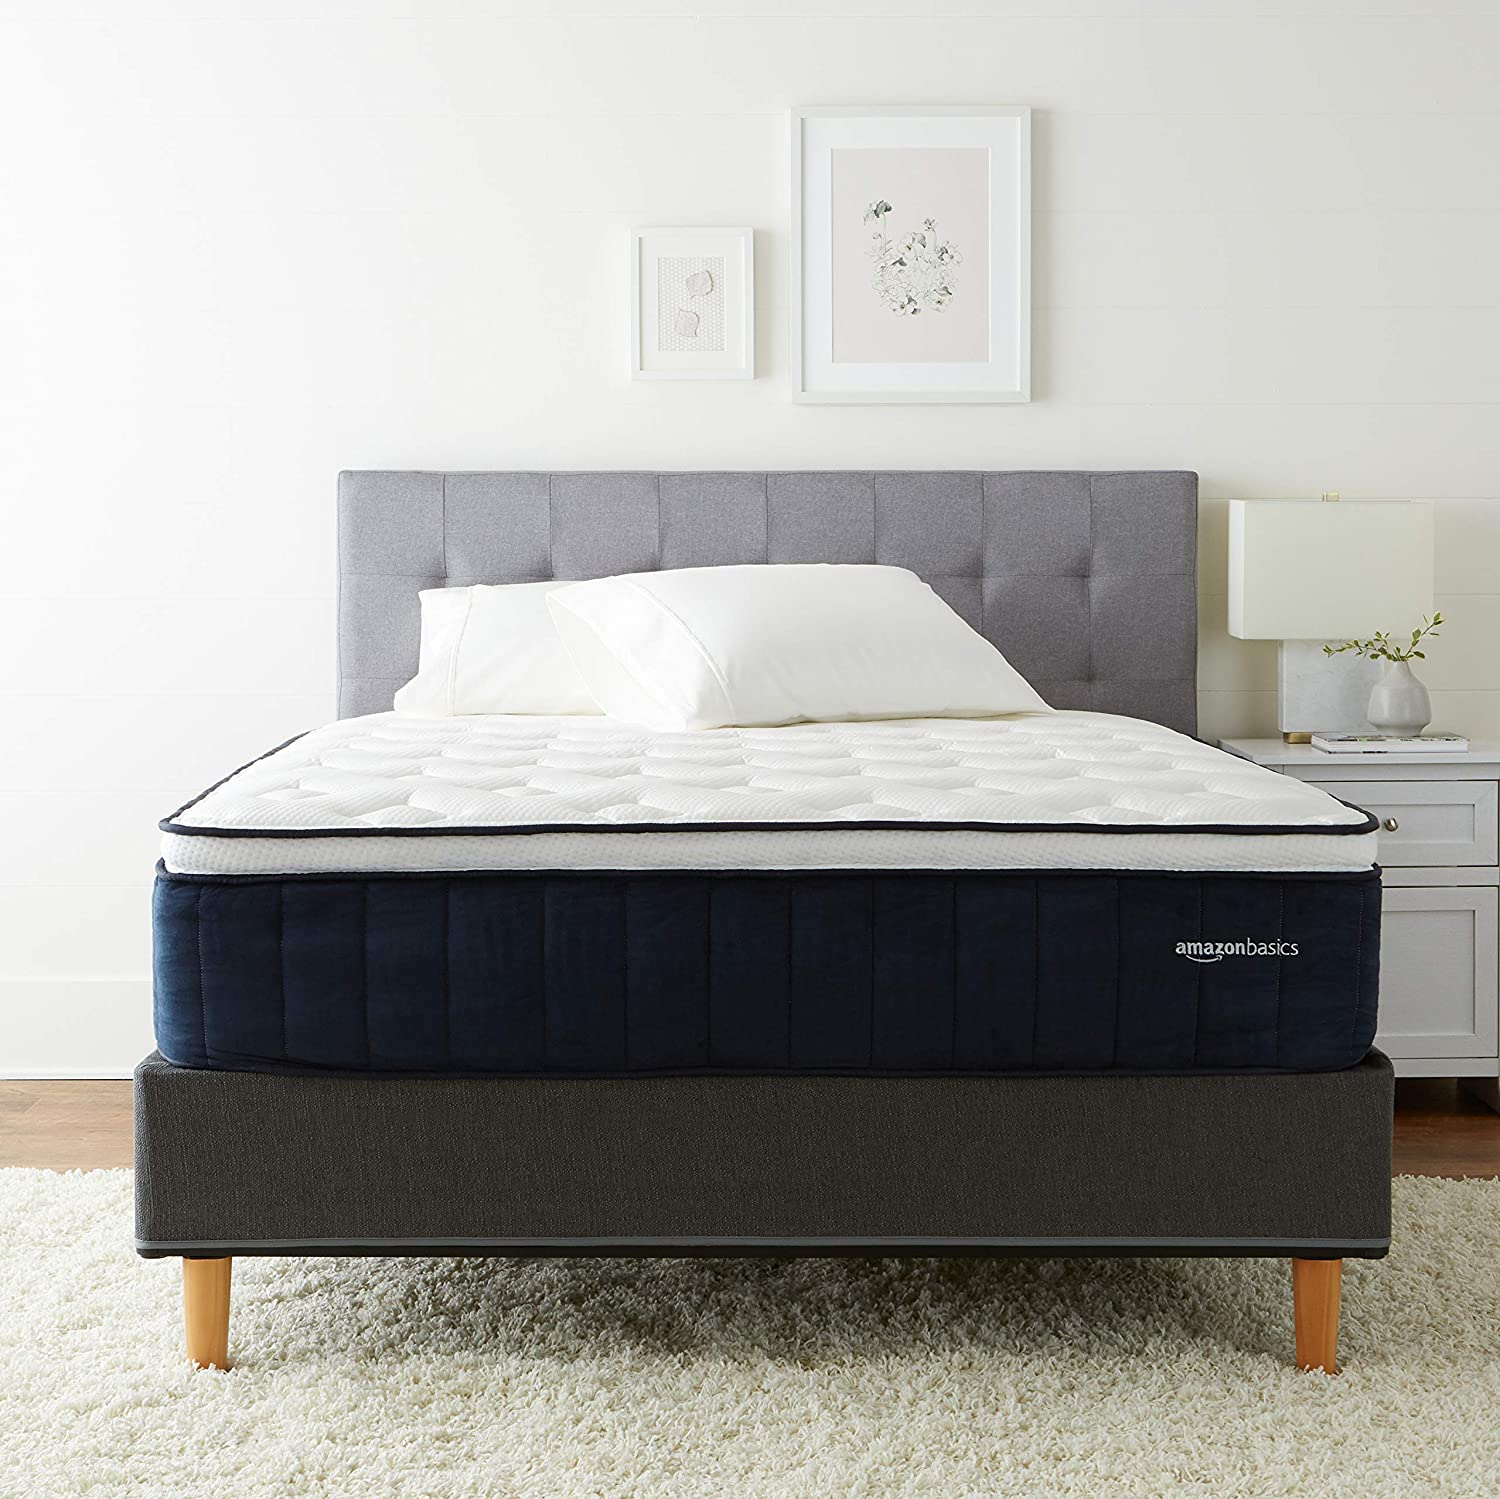 AmazonBasics Signature Hybrid Eurotop Mattress - Medium Feel - Energex Foam for Deeper Support - Cool to Touch top Fabric - CertiPUR-US Certified - 13.5-inch, California King